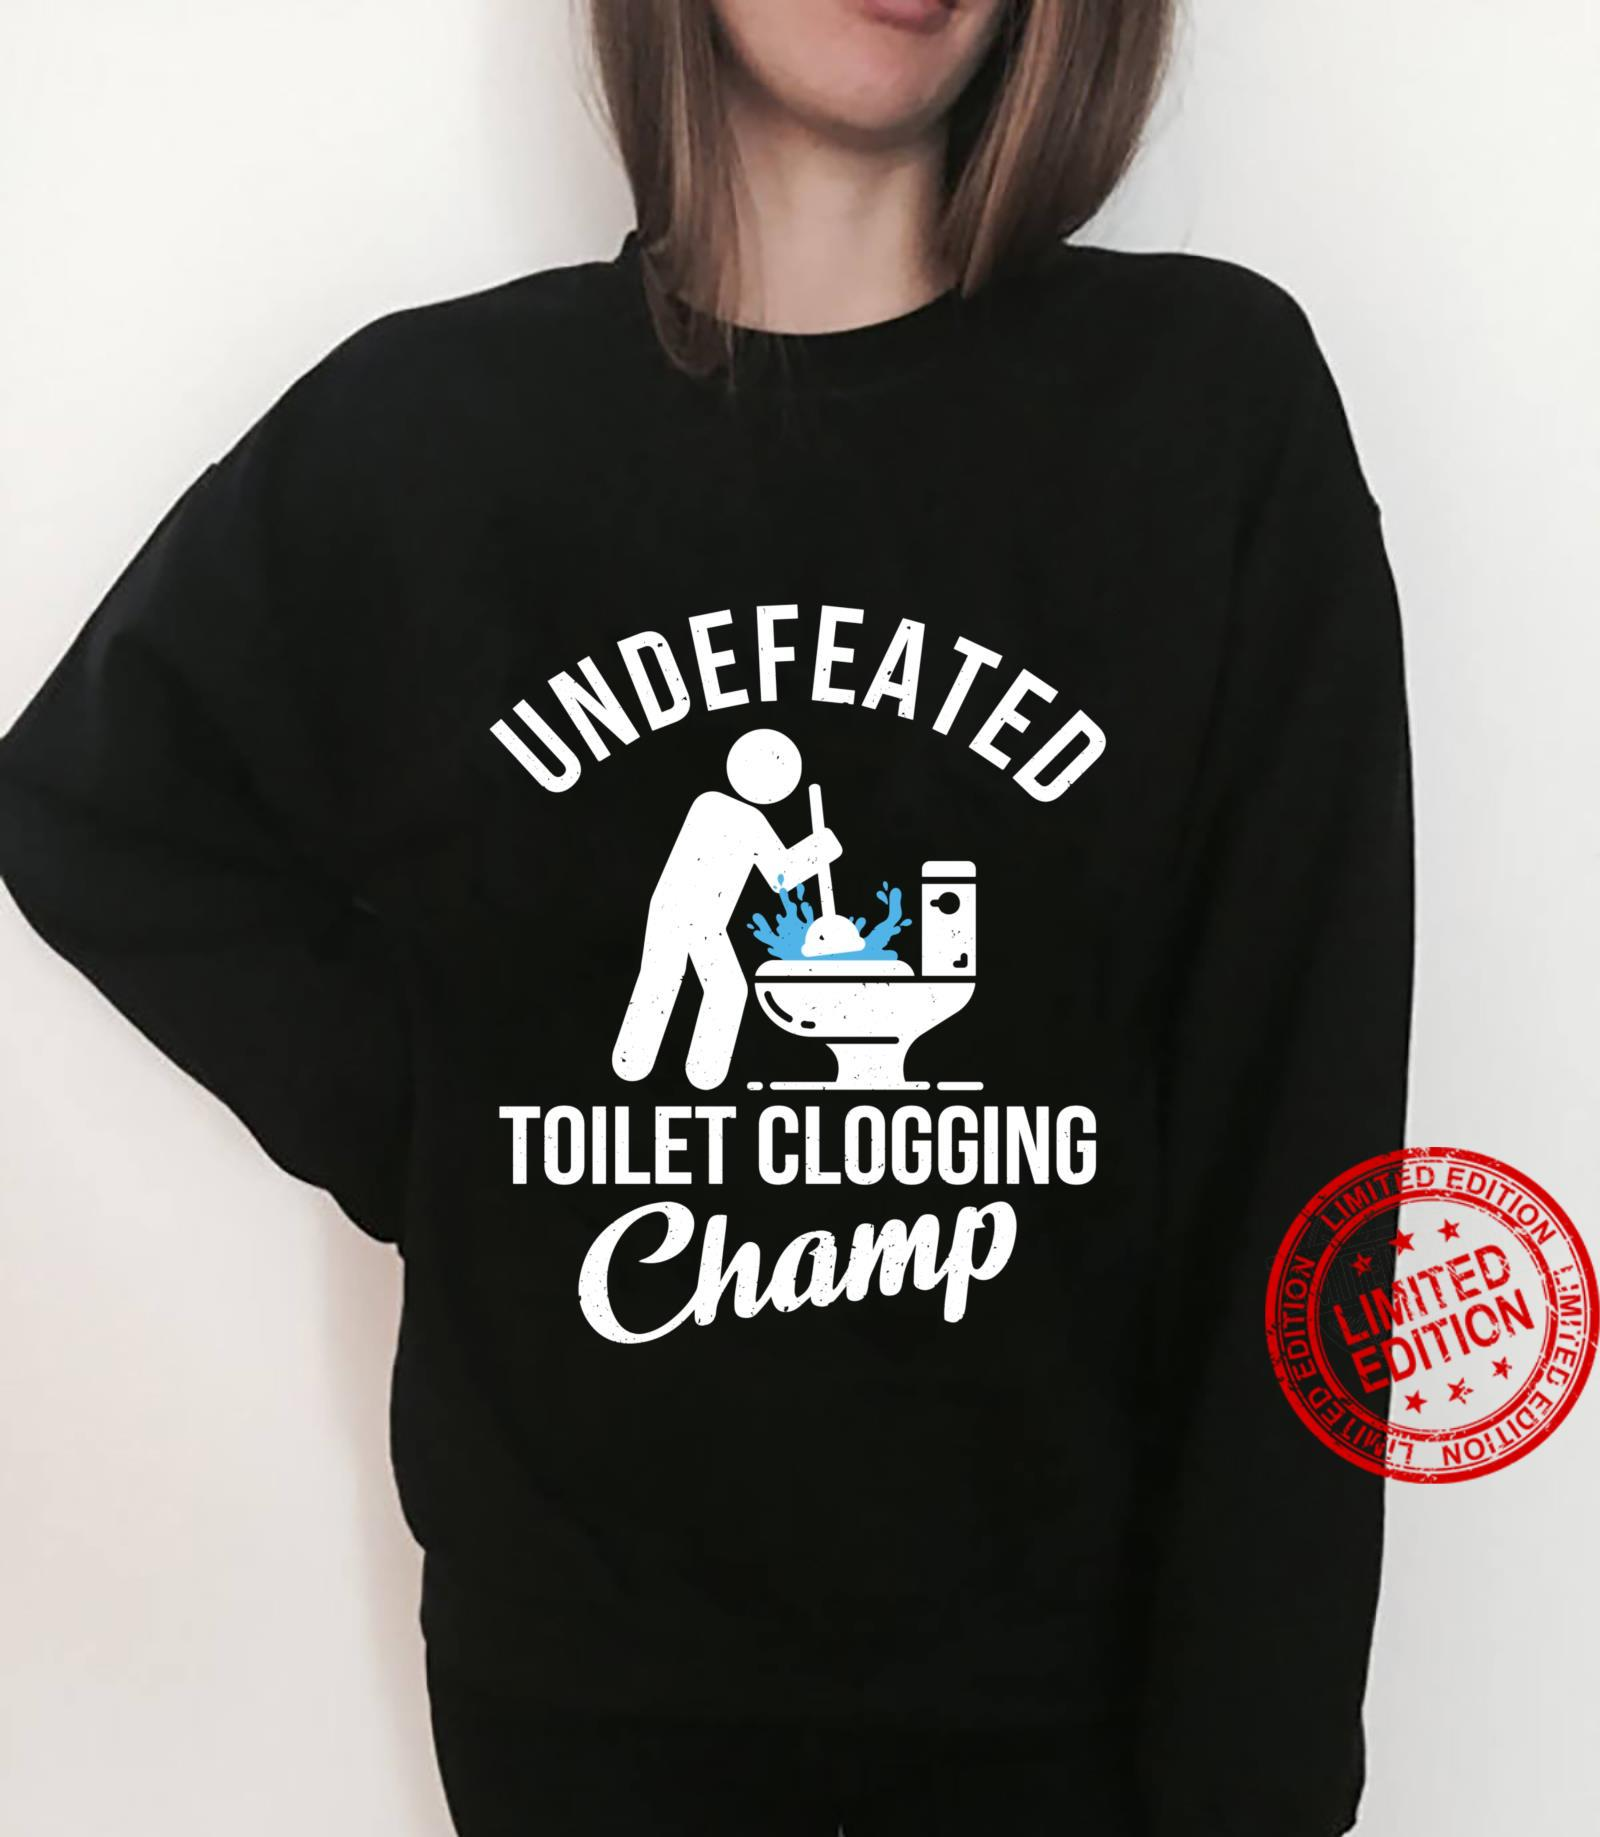 Undefeated Toilet Clogging Champ Hilarious Shirt sweater